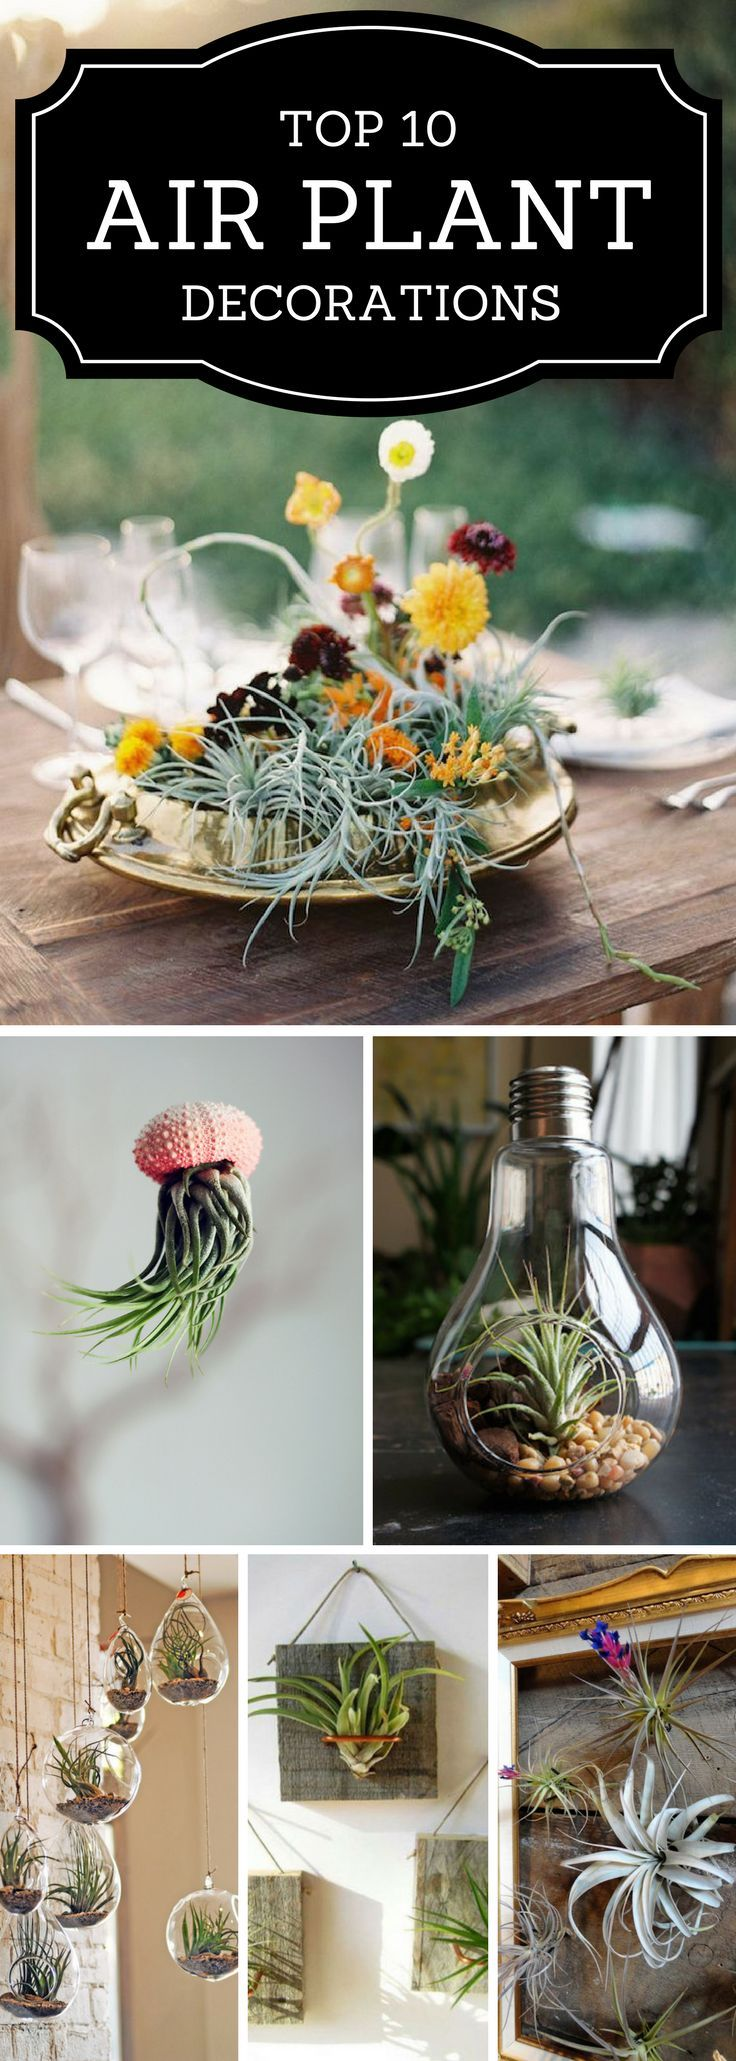 Plant Decoration In Living Room: Air Plant Decor - TOP 10 Beautiful Ideas